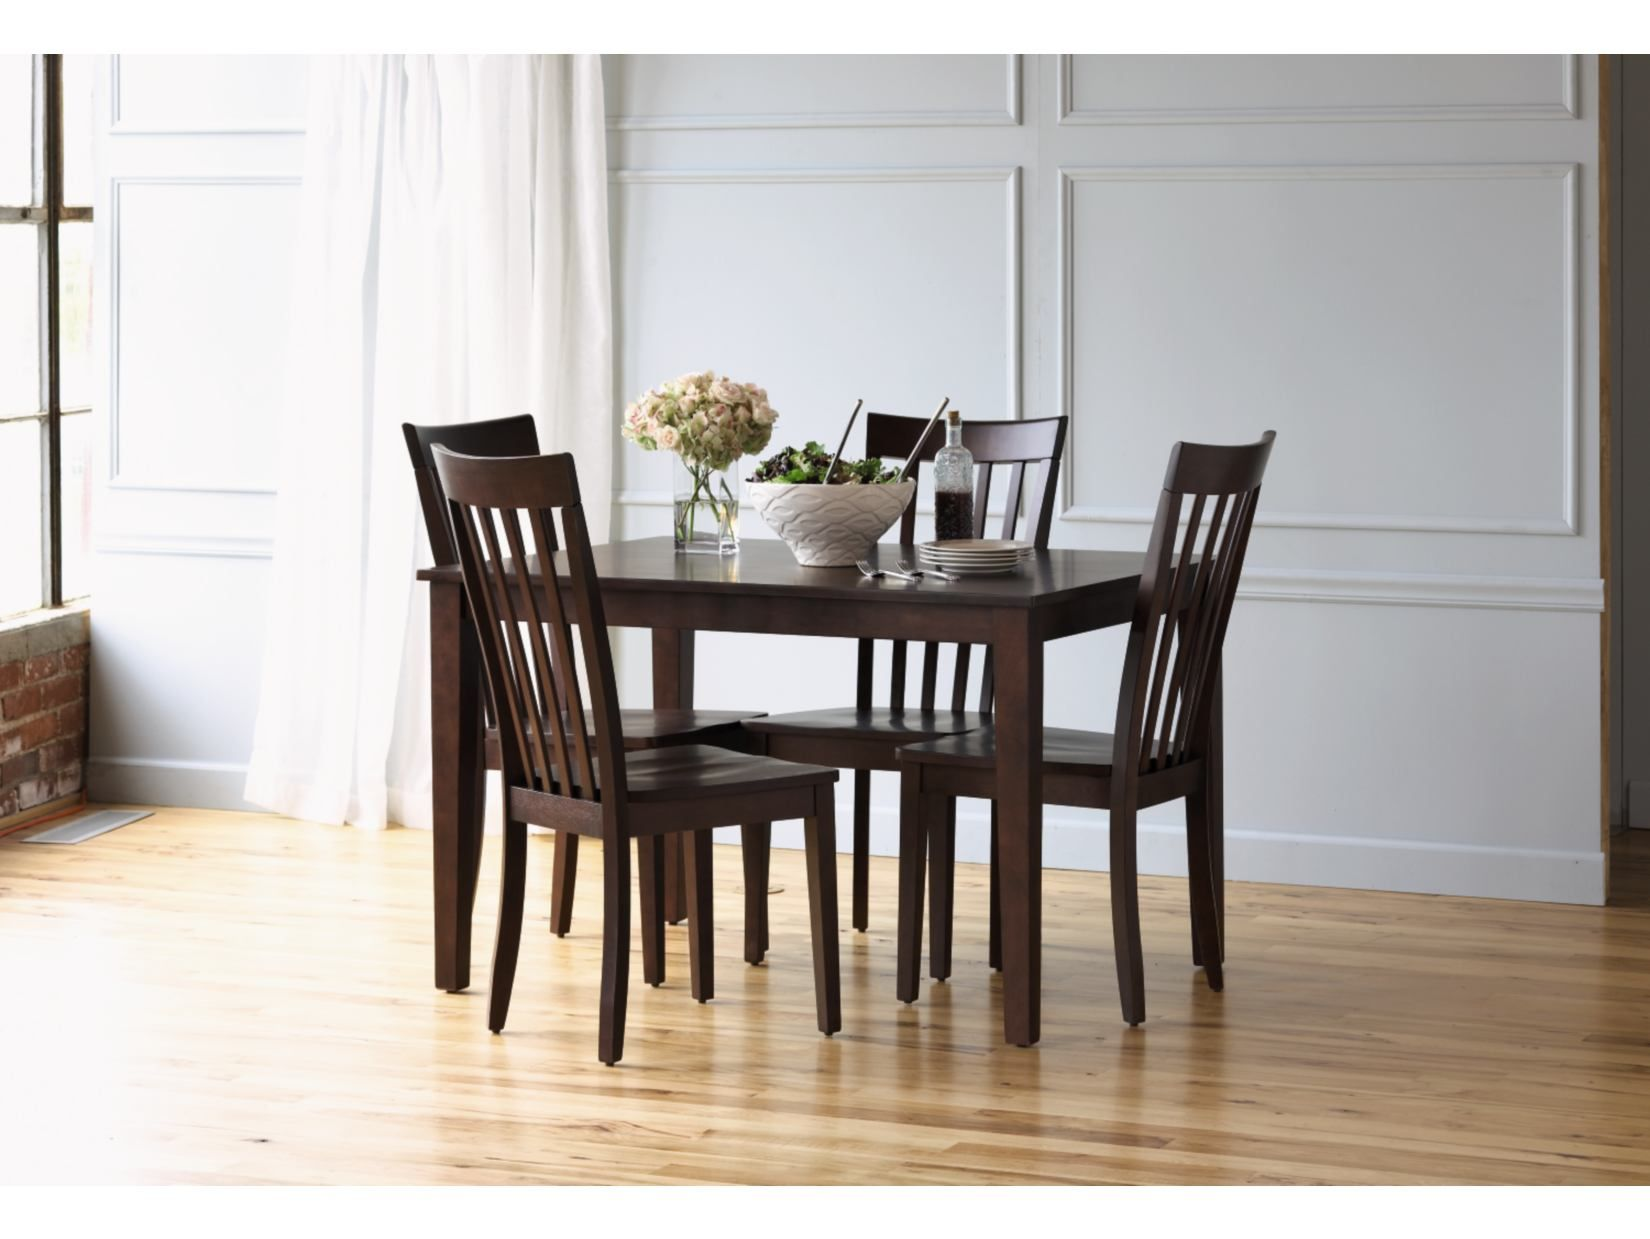 Arts & Crafts Chocolate Finish 5Pc Dining Set  Value City Unique Value City Kitchen Sets Inspiration